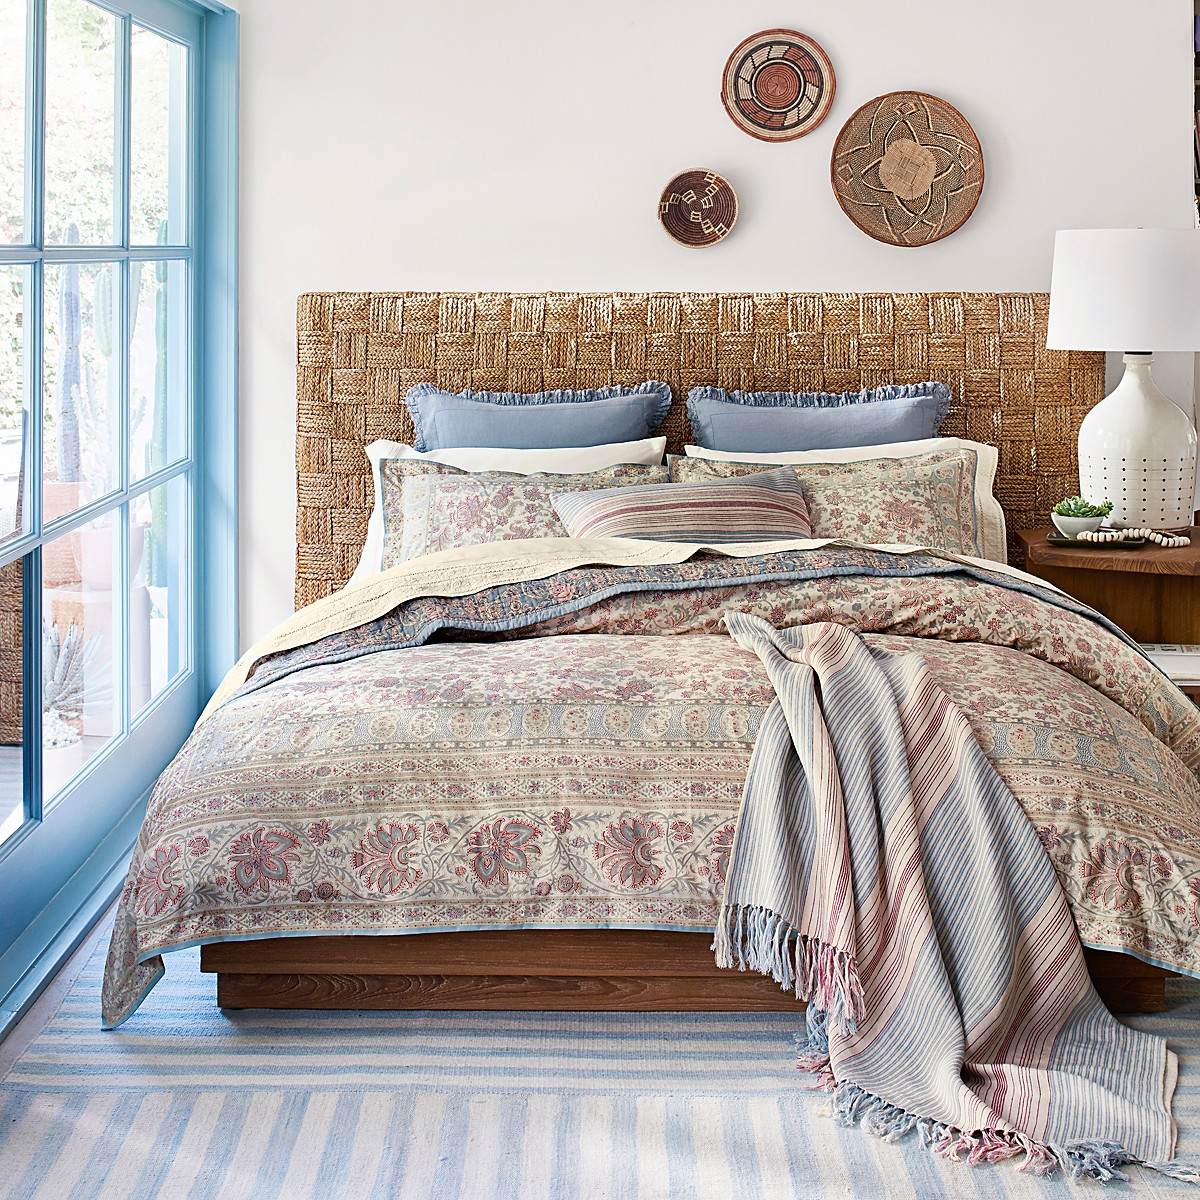 unique duvet where quilts to size sets black walmart bag duvets gasdryernotheating comforter buy covers blue jcpenney sale sheets denim macys luxury white ralph bedding polo king info clearance cover pink xl twin full linen of down and queen lauren ideas discount in